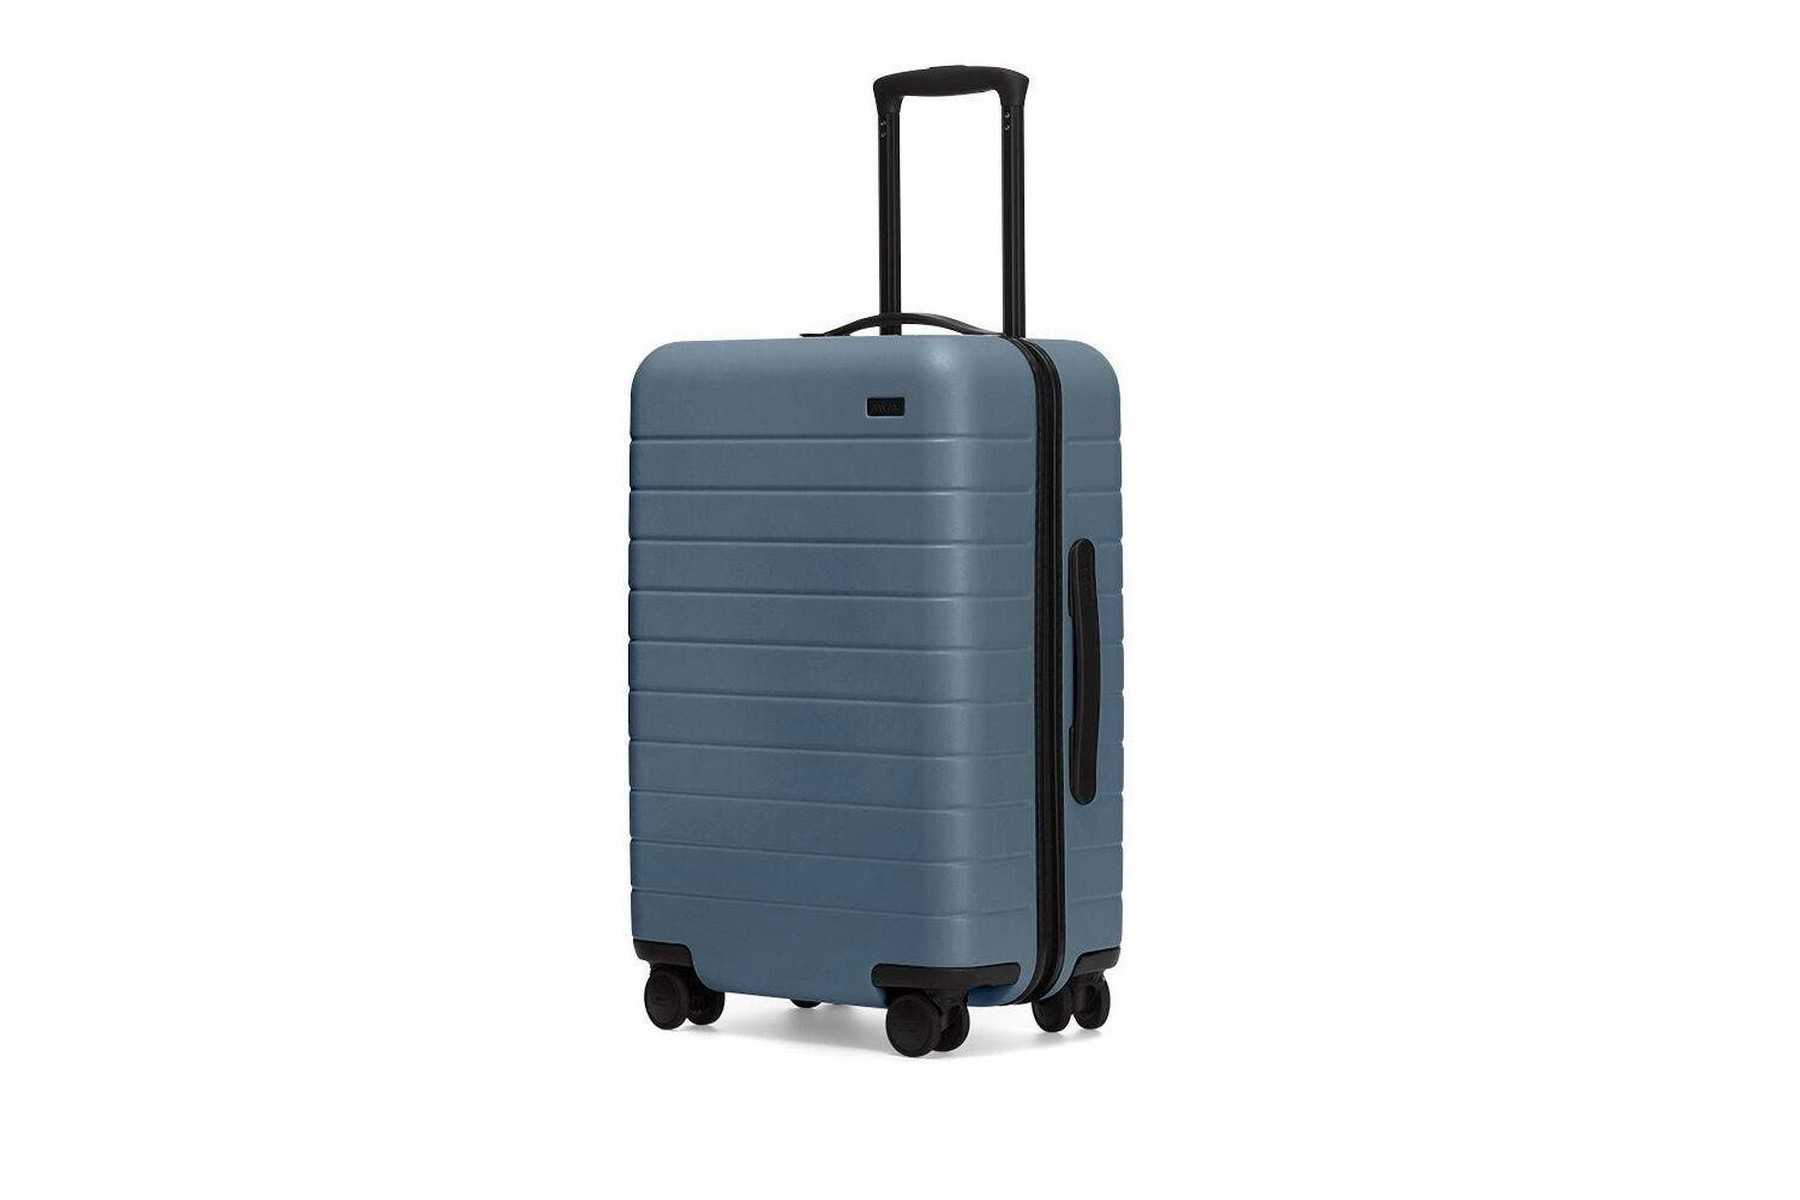 Best Checked Luggage 2020.The Best Luggage For 2020 Best In Luggage Lonny